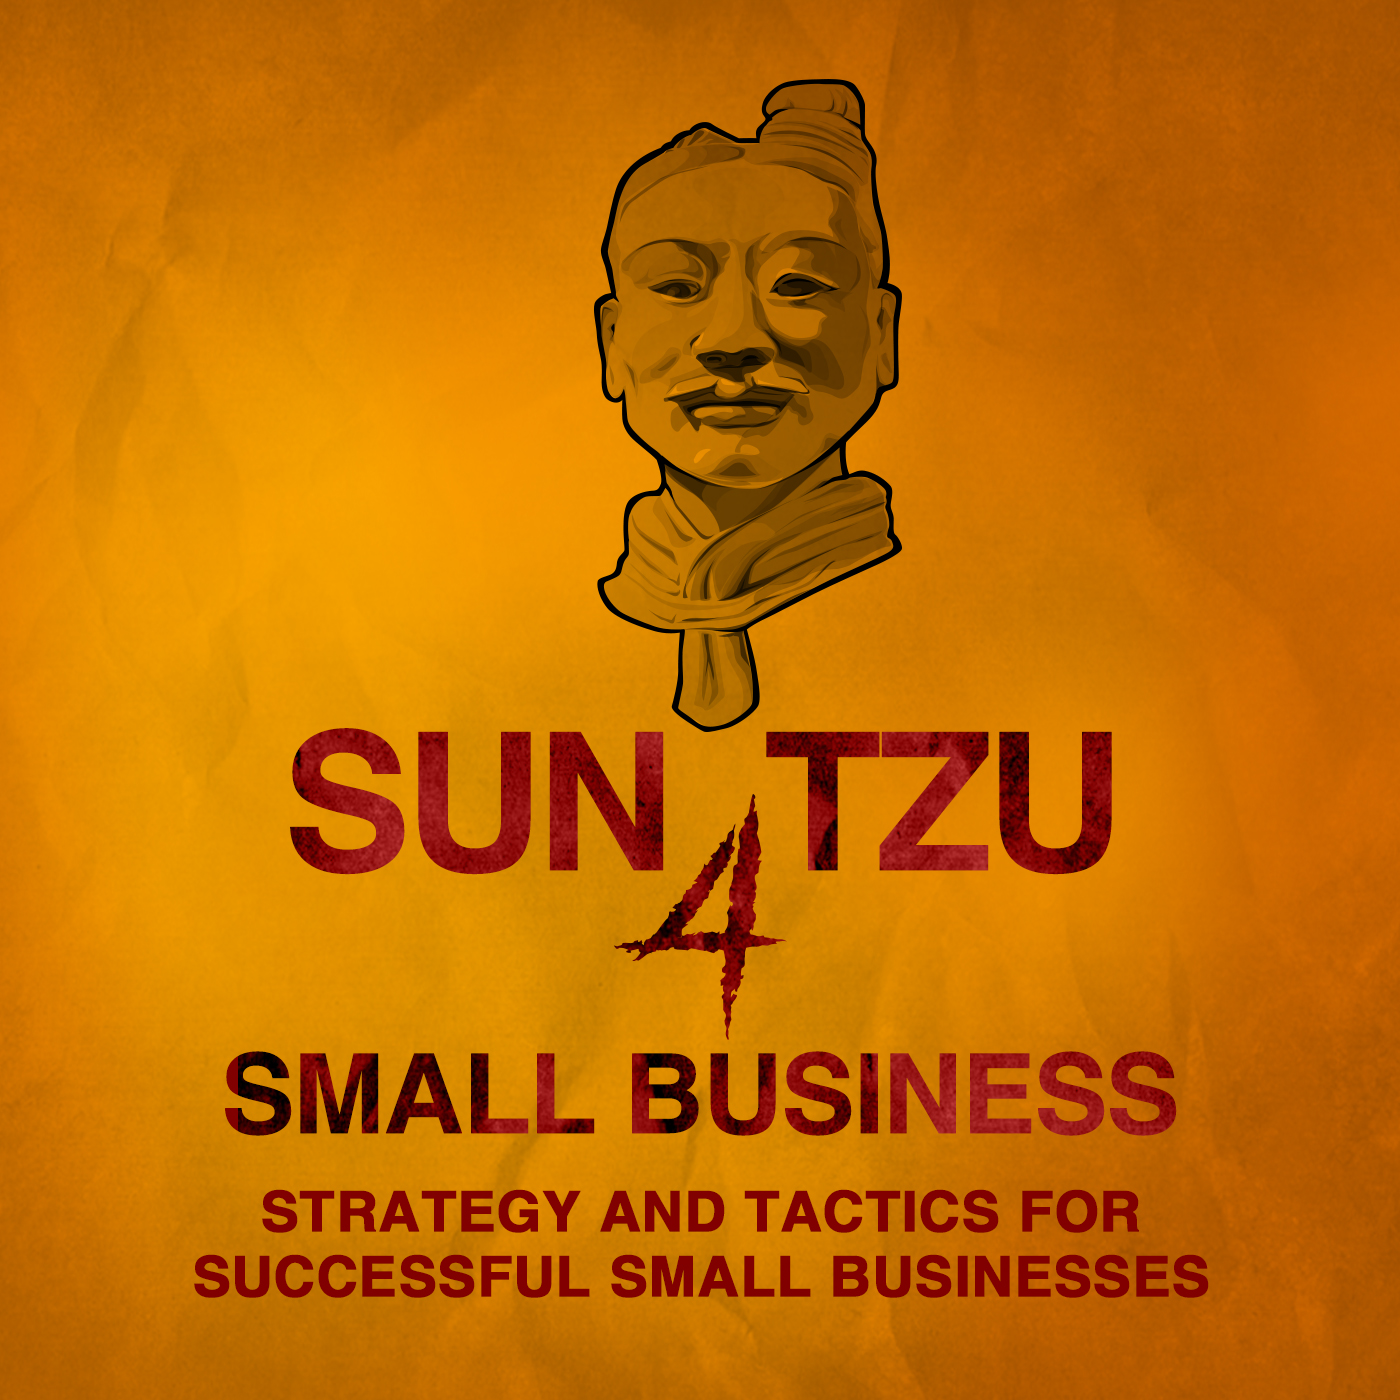 Sun Tzu 4 Small Business    Strategy and Tactics, Technology and Leadership, Management and Marketing for Small Business Owners show art